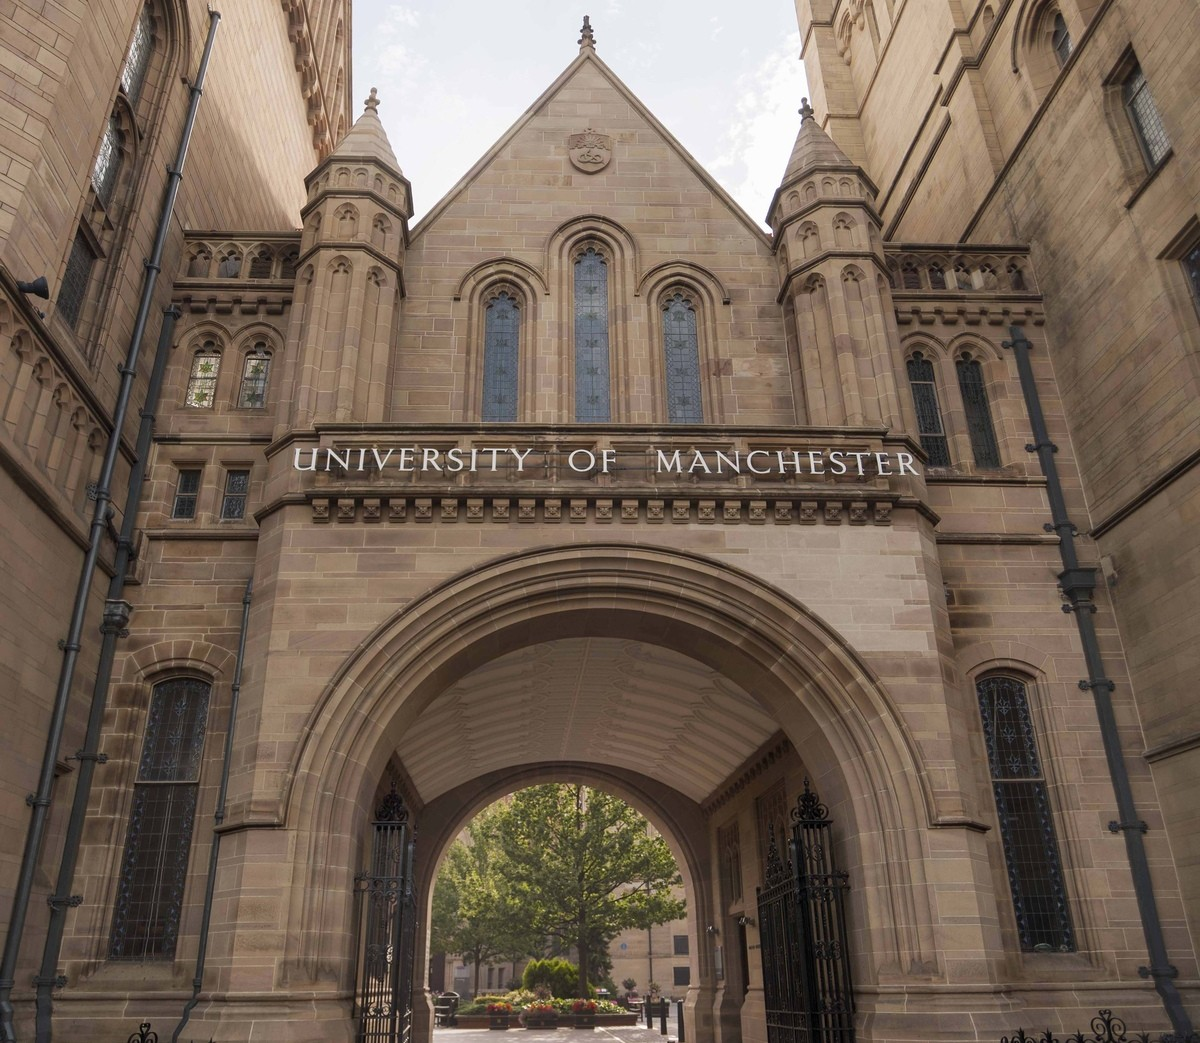 an application at the university of manchester Deadline for submissions: 5pm, friday 14 september 2018 the john rylands research institute is pleased to offer pilot grants of up to £5,000 to support academic and library staff at the university of manchester who wish to conduct initial and exploratory research into the special collections at the university of manchester library in.